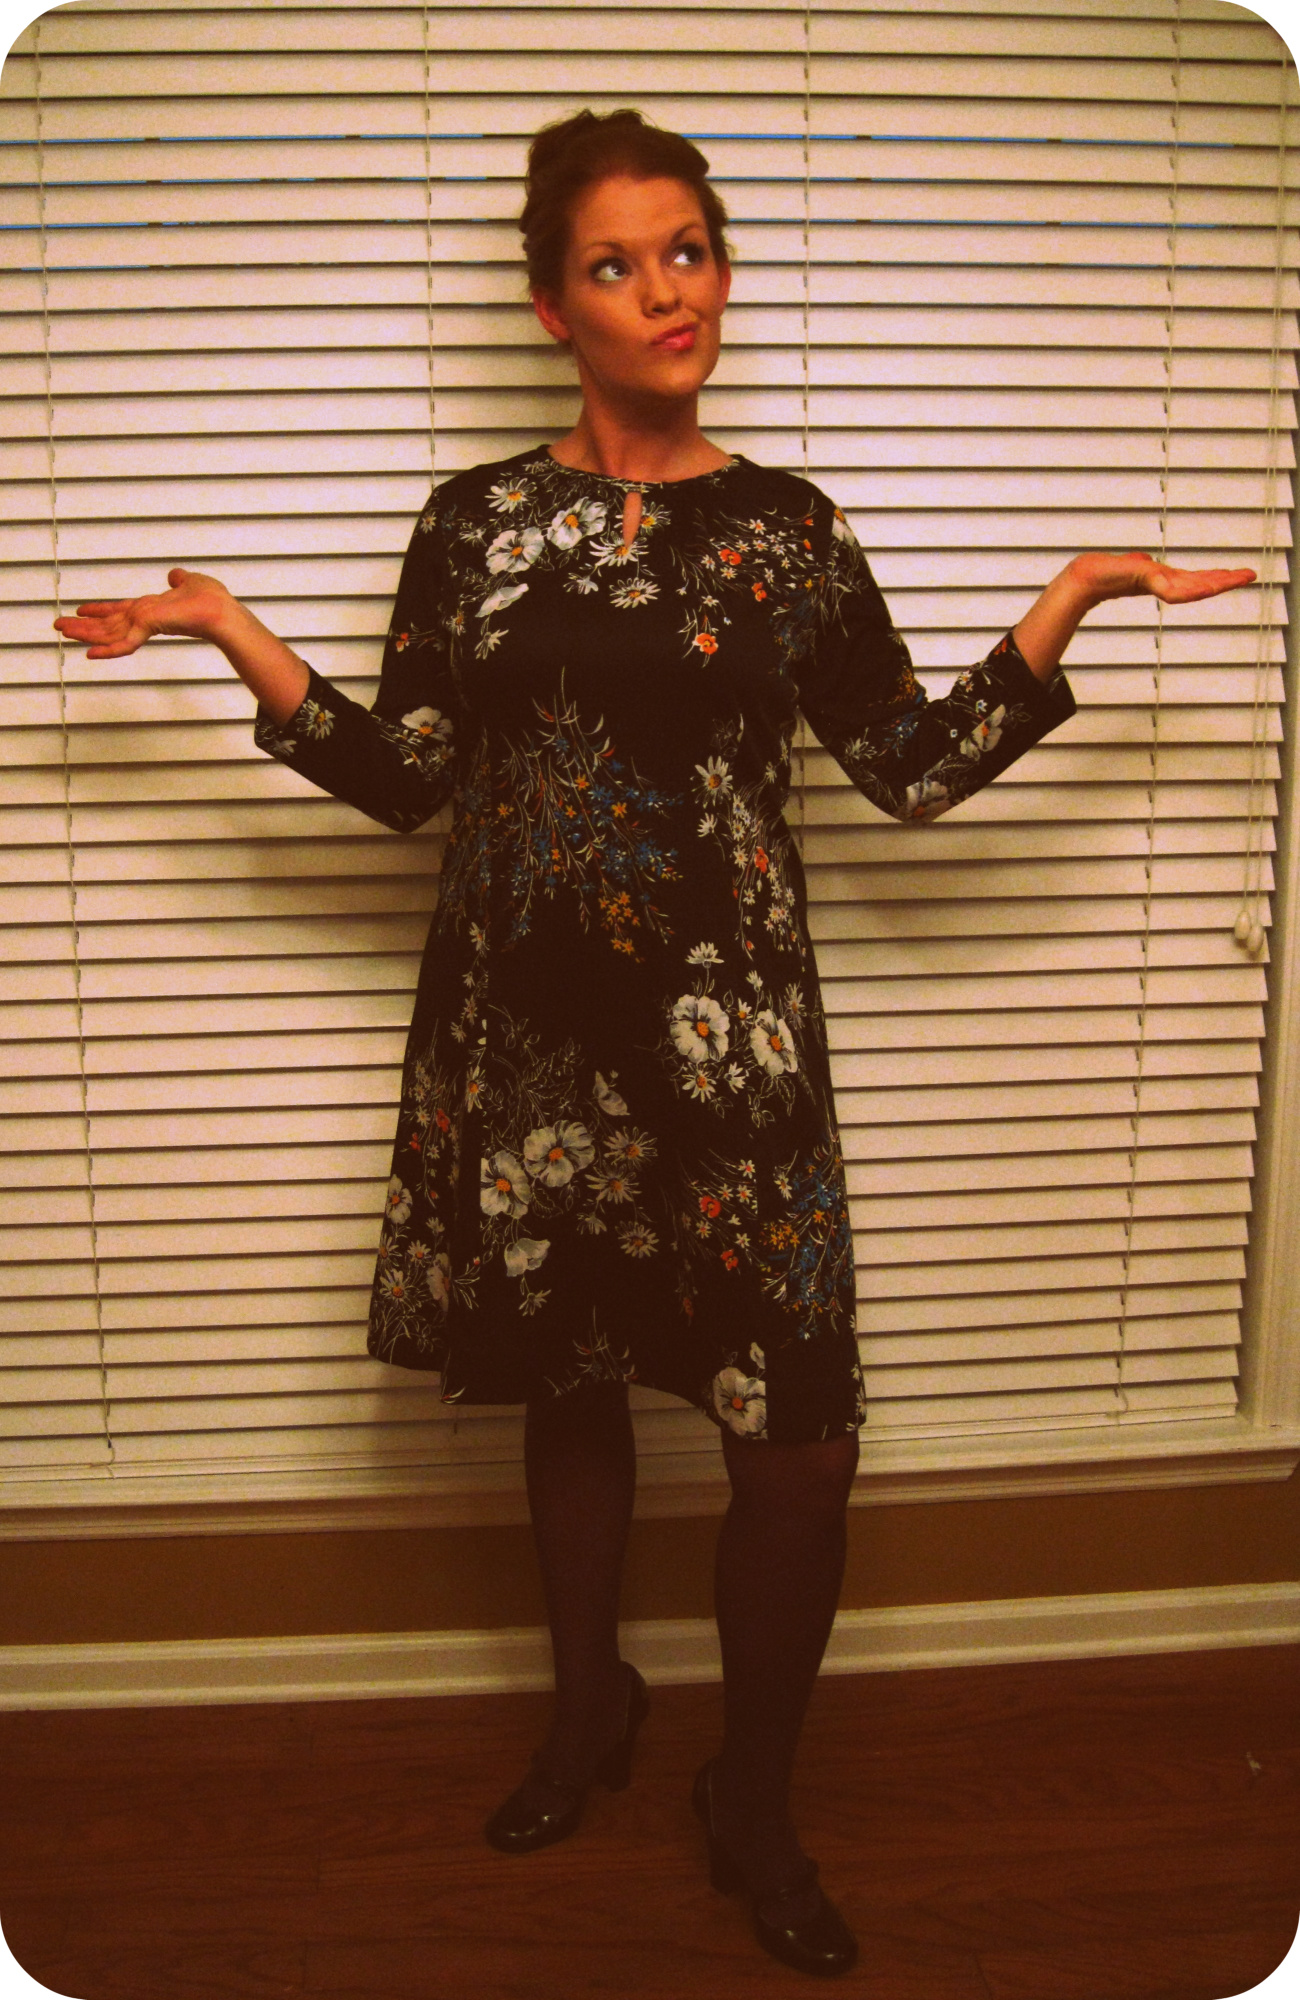 ba828baa6e Here is my Favorite Vintage Dress… I bought it at a thrift store when I was  19!!! I paired it with purple Betsey Johnson tights and Mary Jane Heels  (also ...